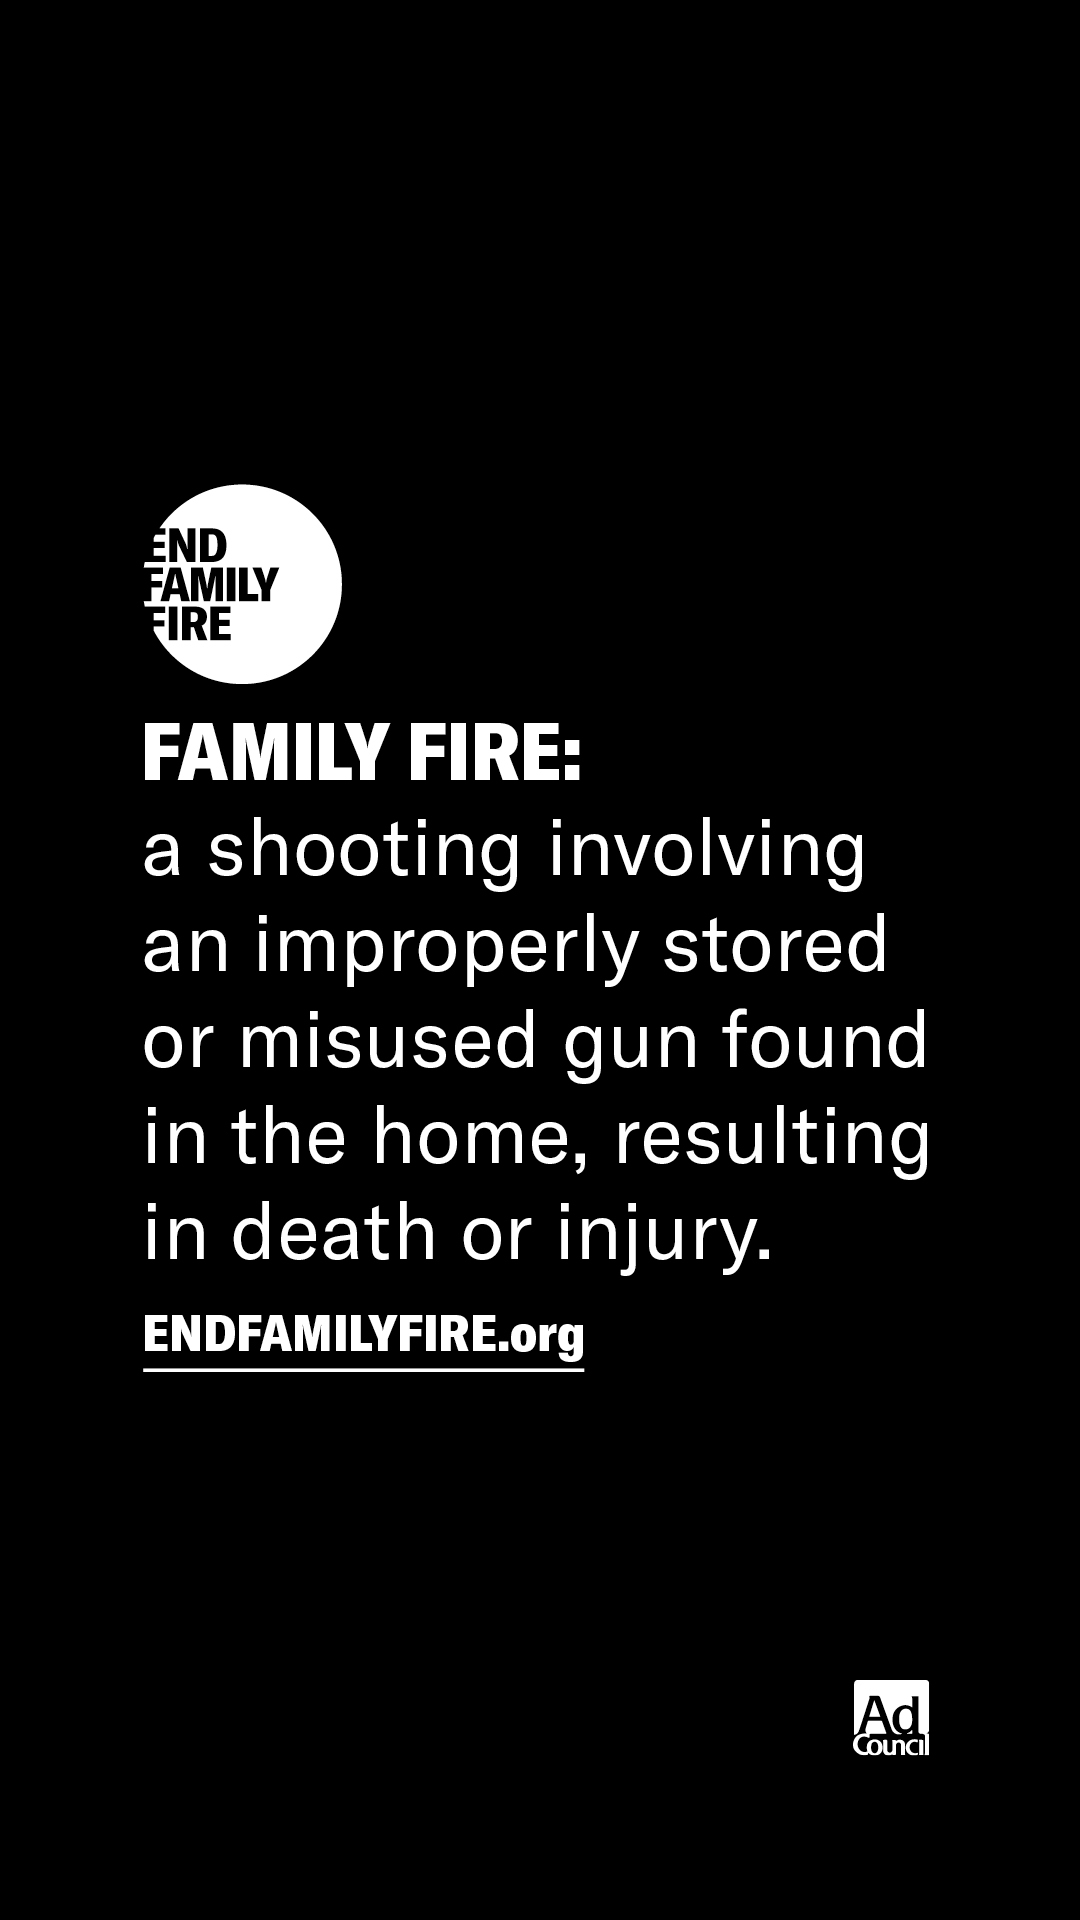 End Family Fire - Definition